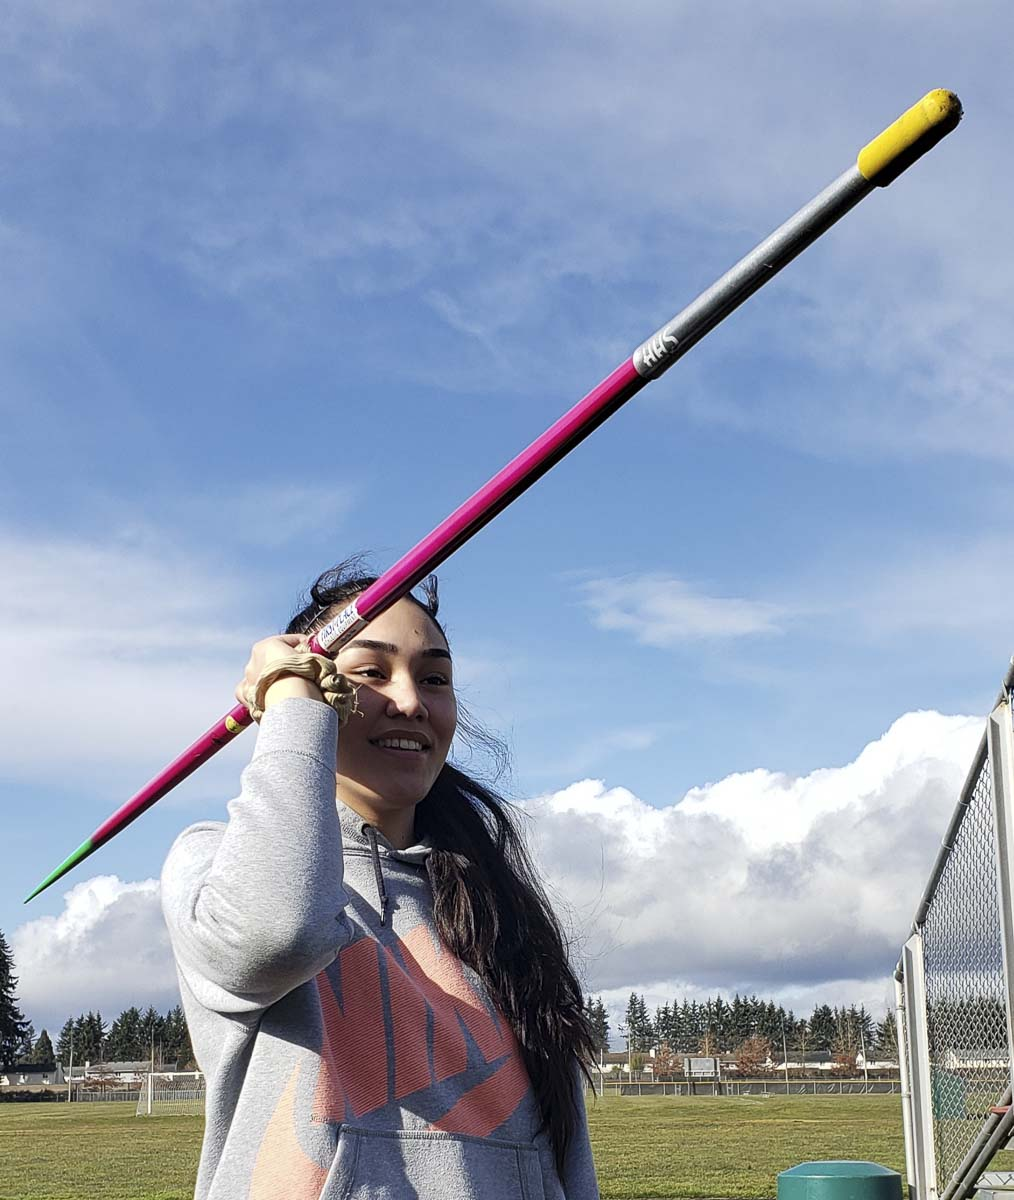 Katie Peneueta has a new drive. Unsure of what sport she was going to compete in this spring for Heritage, a message for a two-time Olympian from Clark County inspired Peneueta to give the javelin one more try. Now, she wants to break the school record and see just how far the javelin can take her. Photo by Paul Valencia.